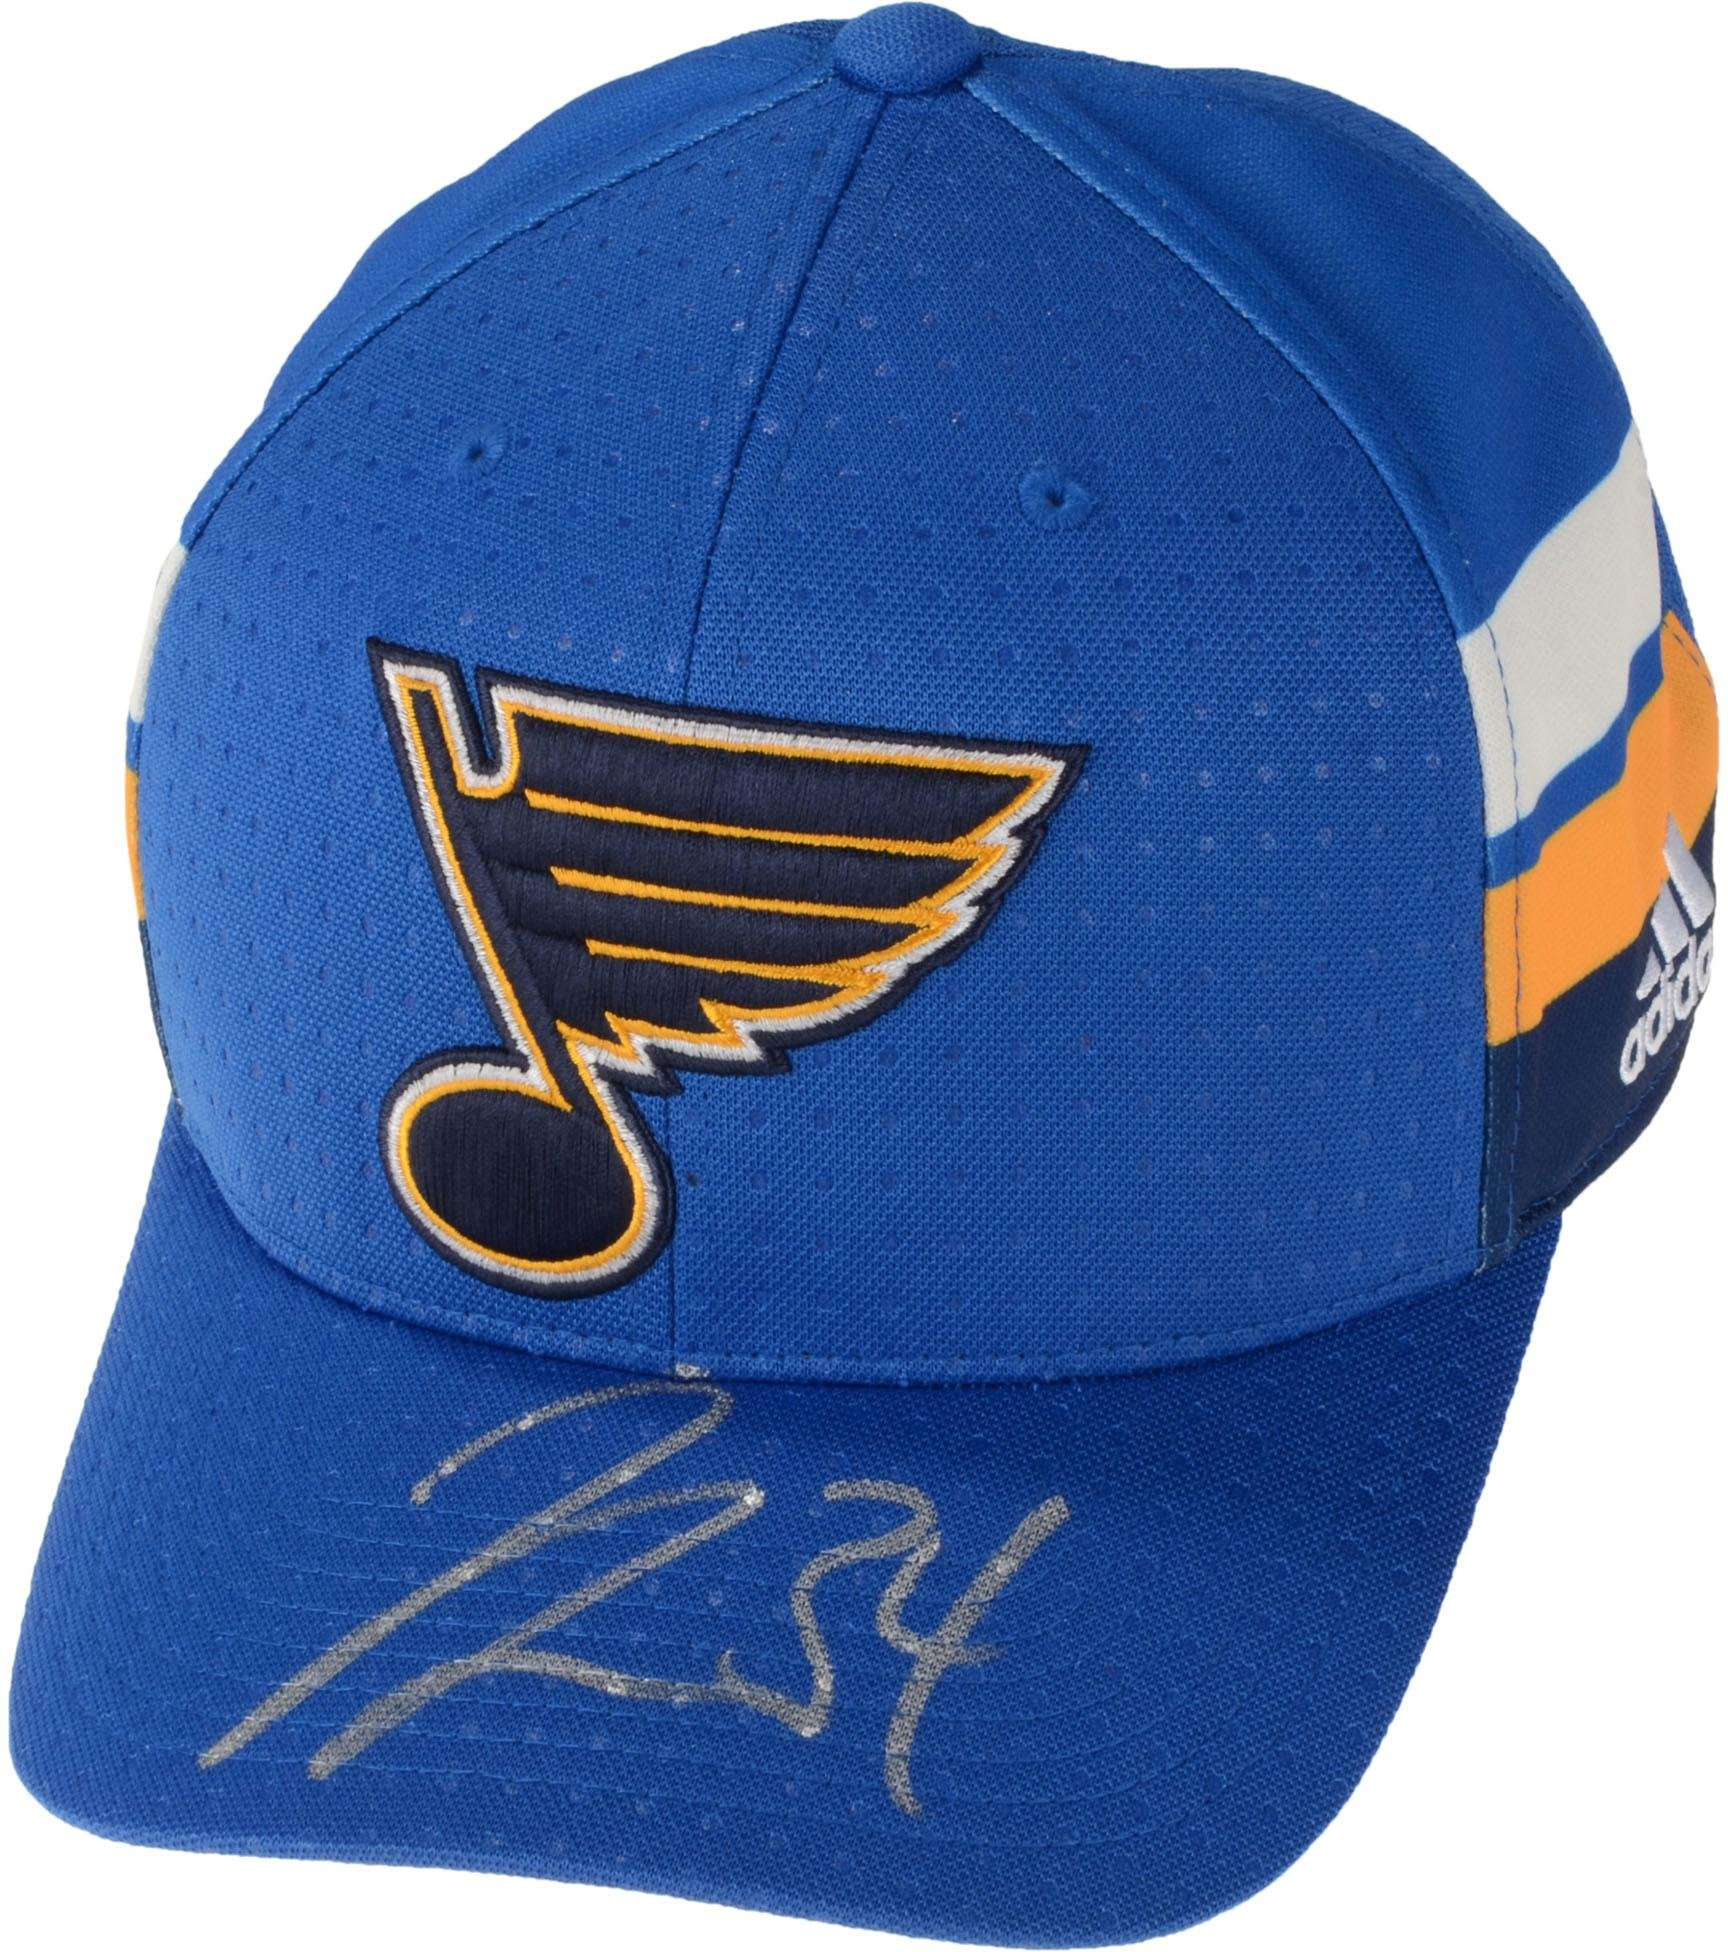 100% authentic 64e5e 961f0 Get Quotations · Jake Allen St. Louis Blues Autographed Adidas Cap -  Fanatics Authentic Certified - Autographed NHL